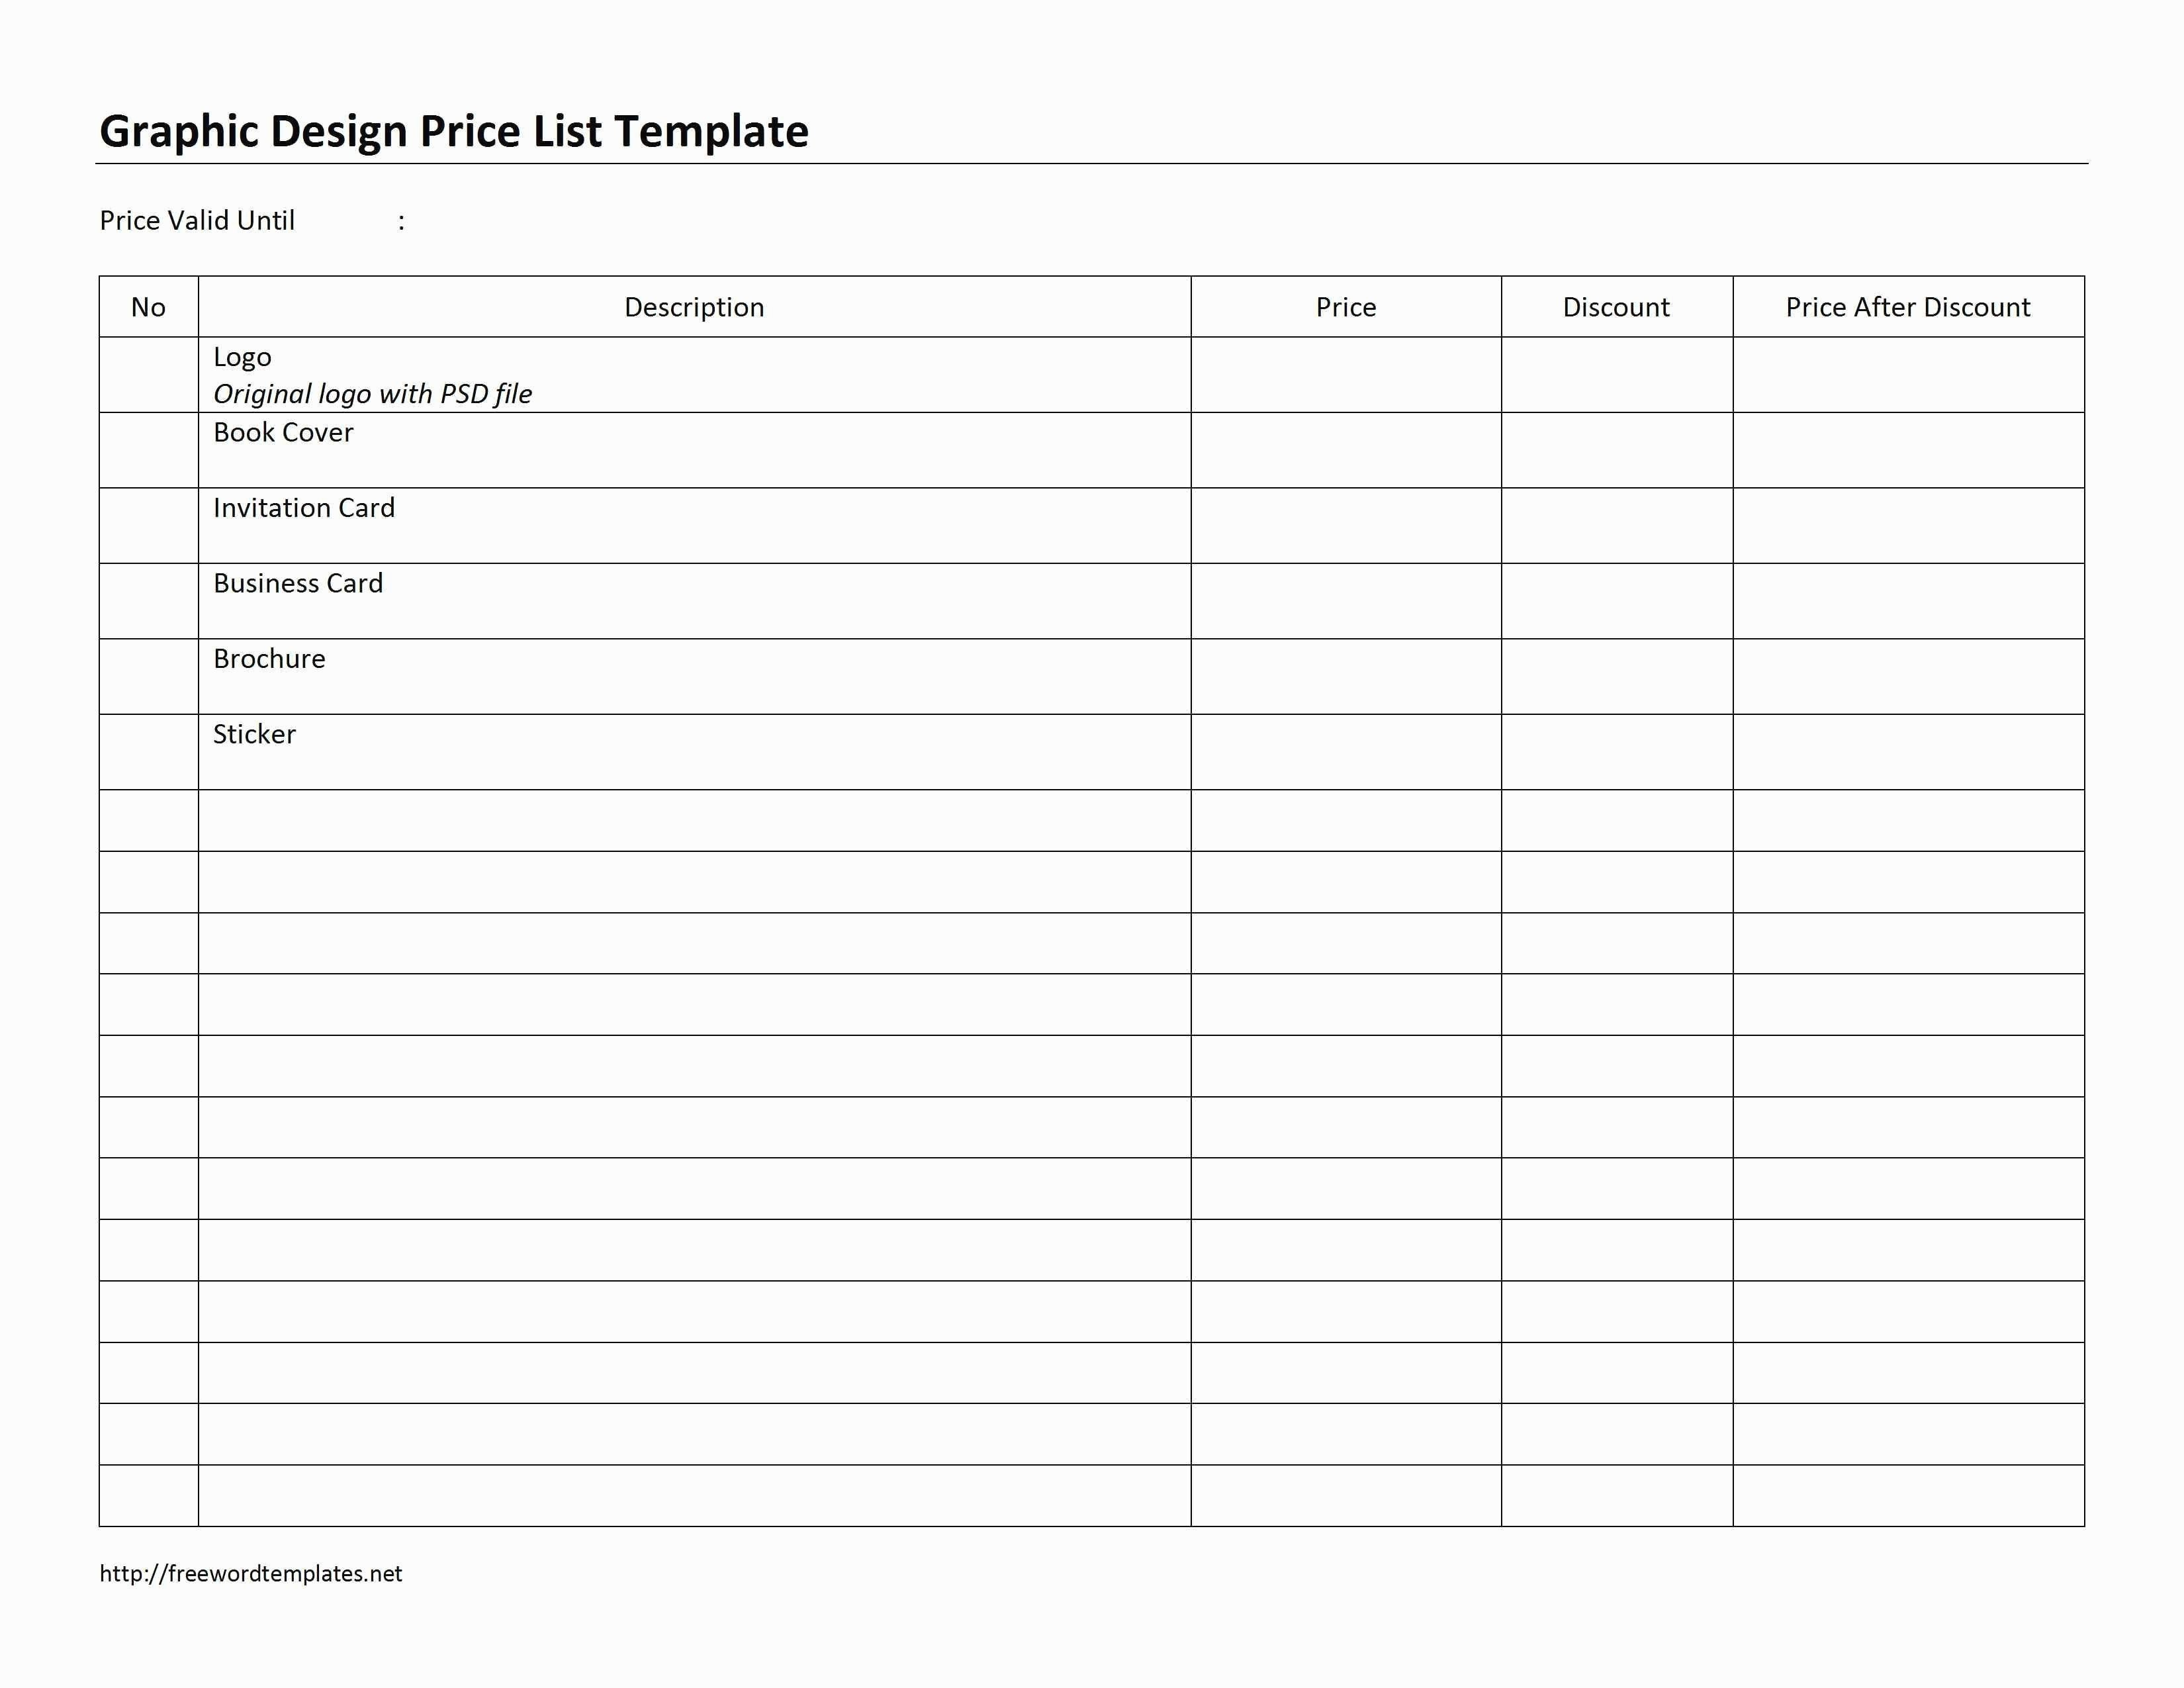 Check Printing Template Excel Check Printing Template Excel 11 Unbelievable Facts About